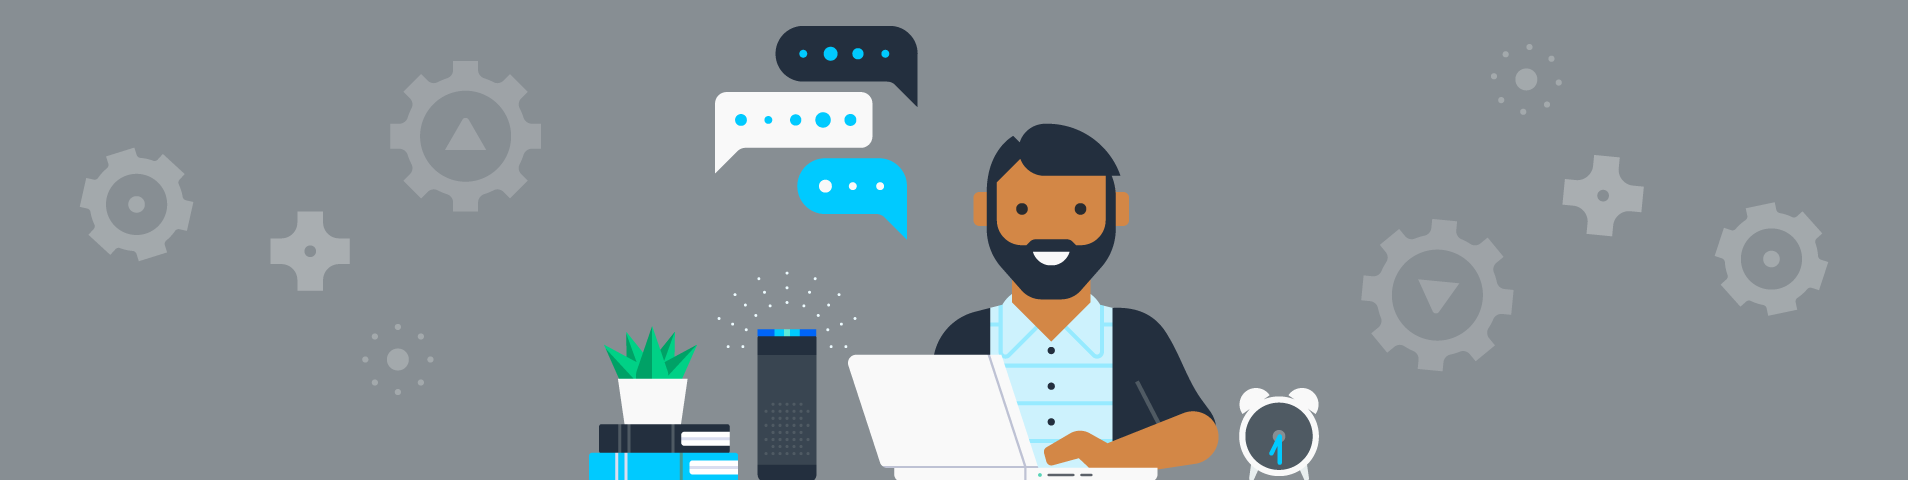 How to Debug Your Alexa Skill Using DynamoDB with the New